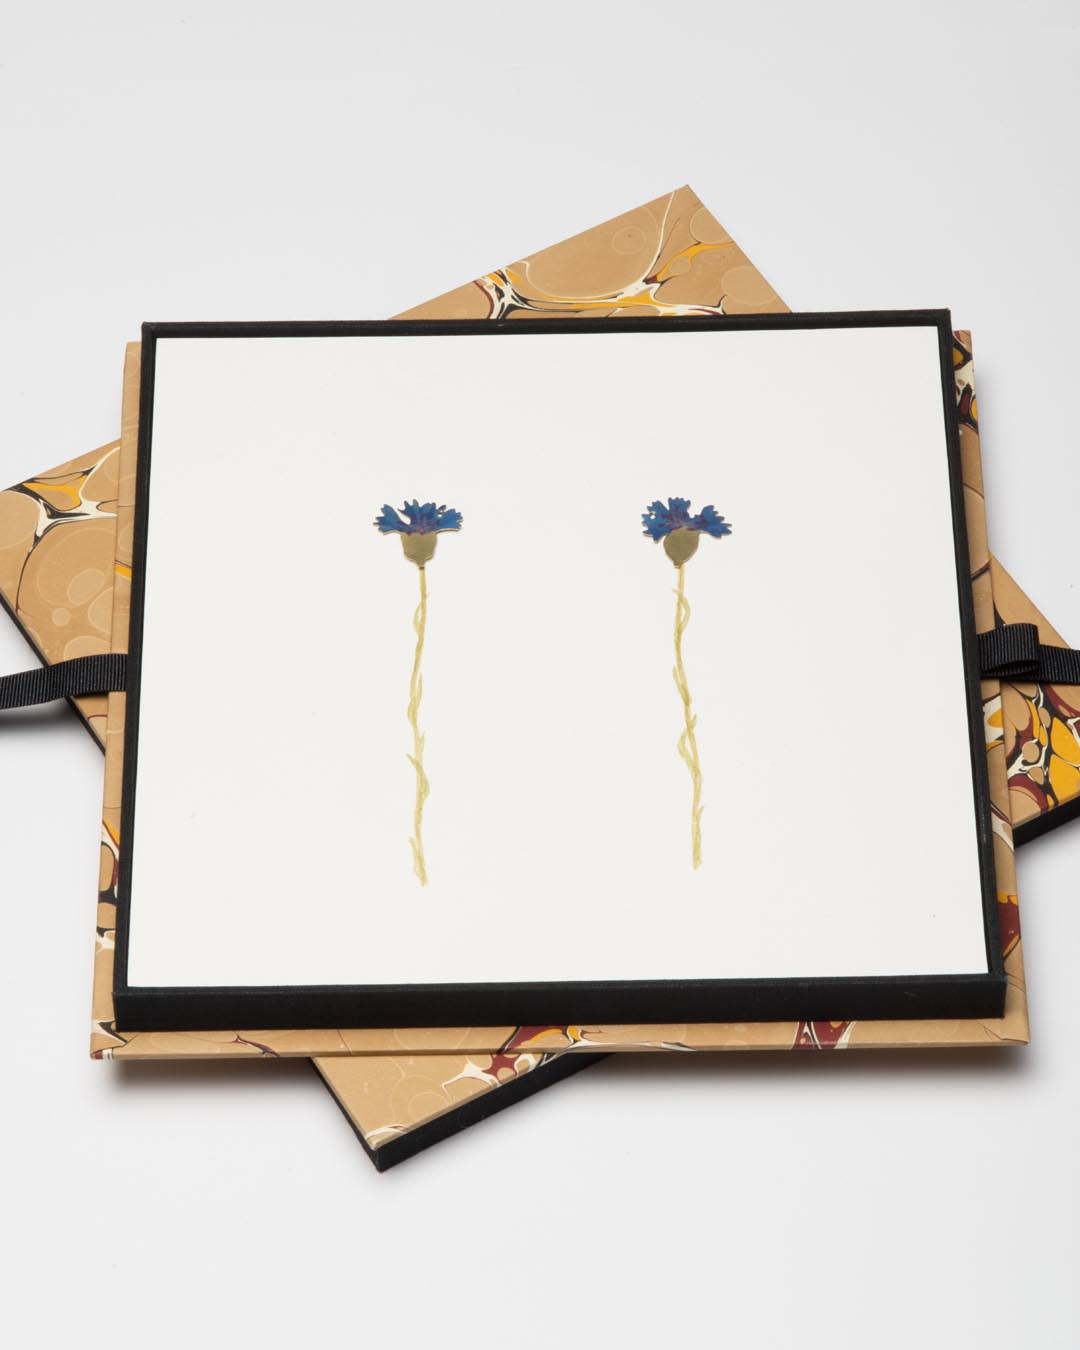 Christopher Thompson Royds, Natura Morta: cornflowers, 2019, stud earrings; 18ct gold, hand-painted, diamonds, 20 x 20 mm, €1150 (image 1/2)